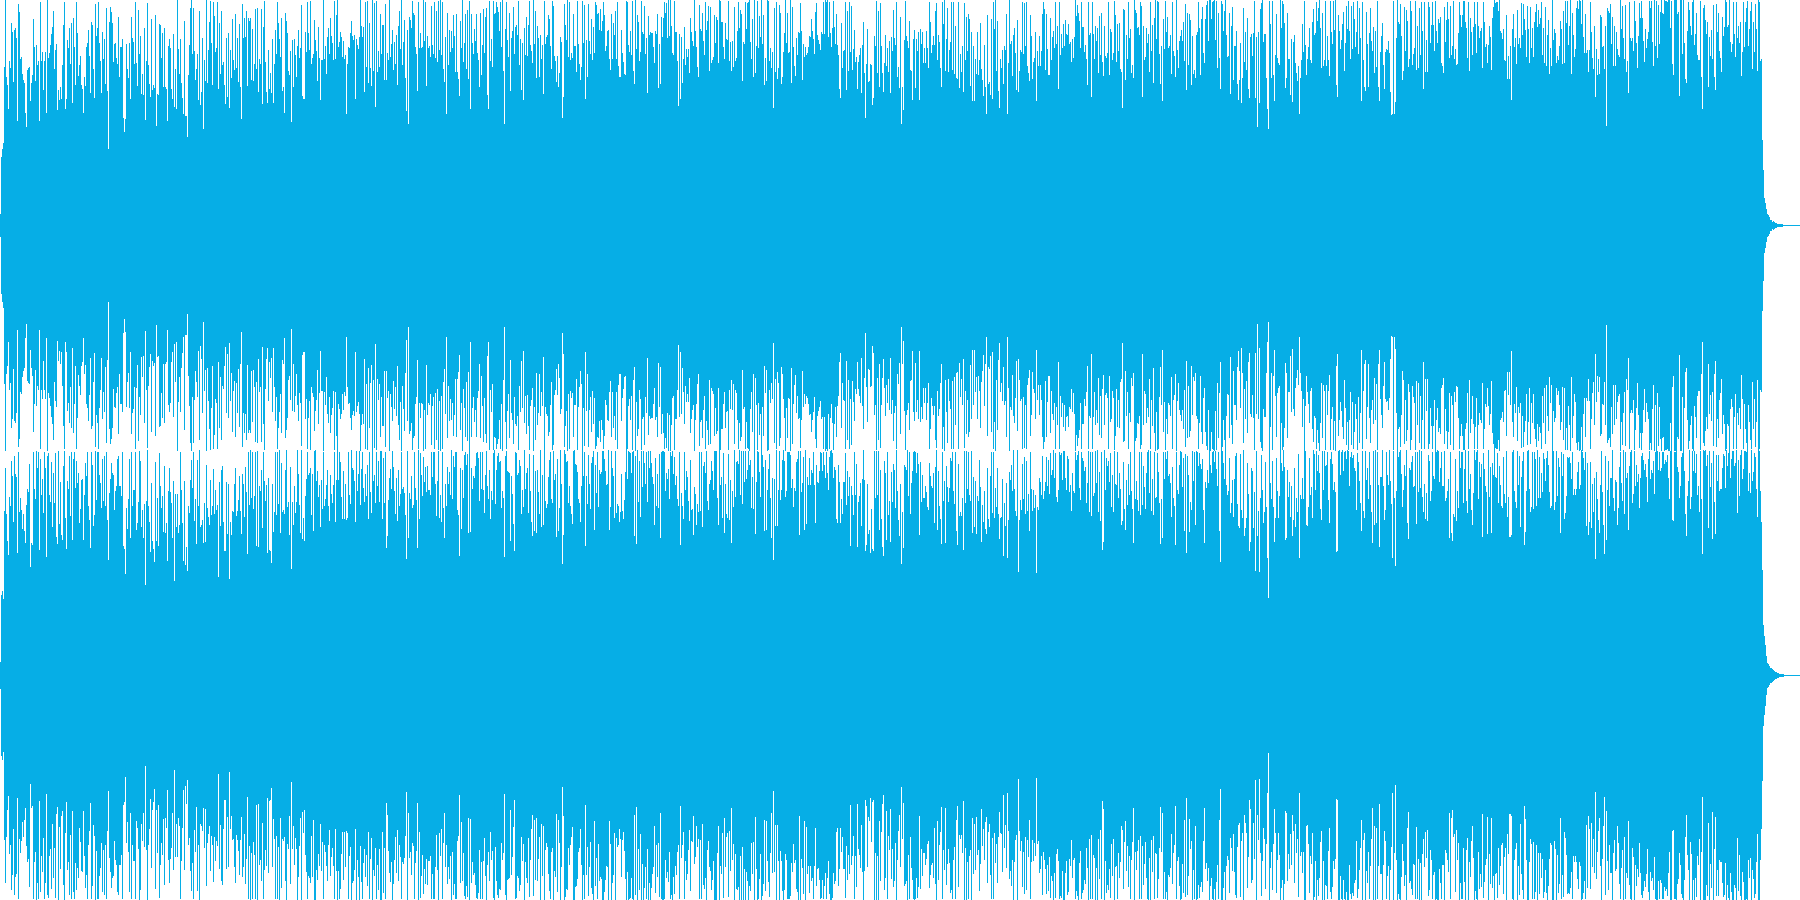 Light BGM with lively flute's reproduced waveform